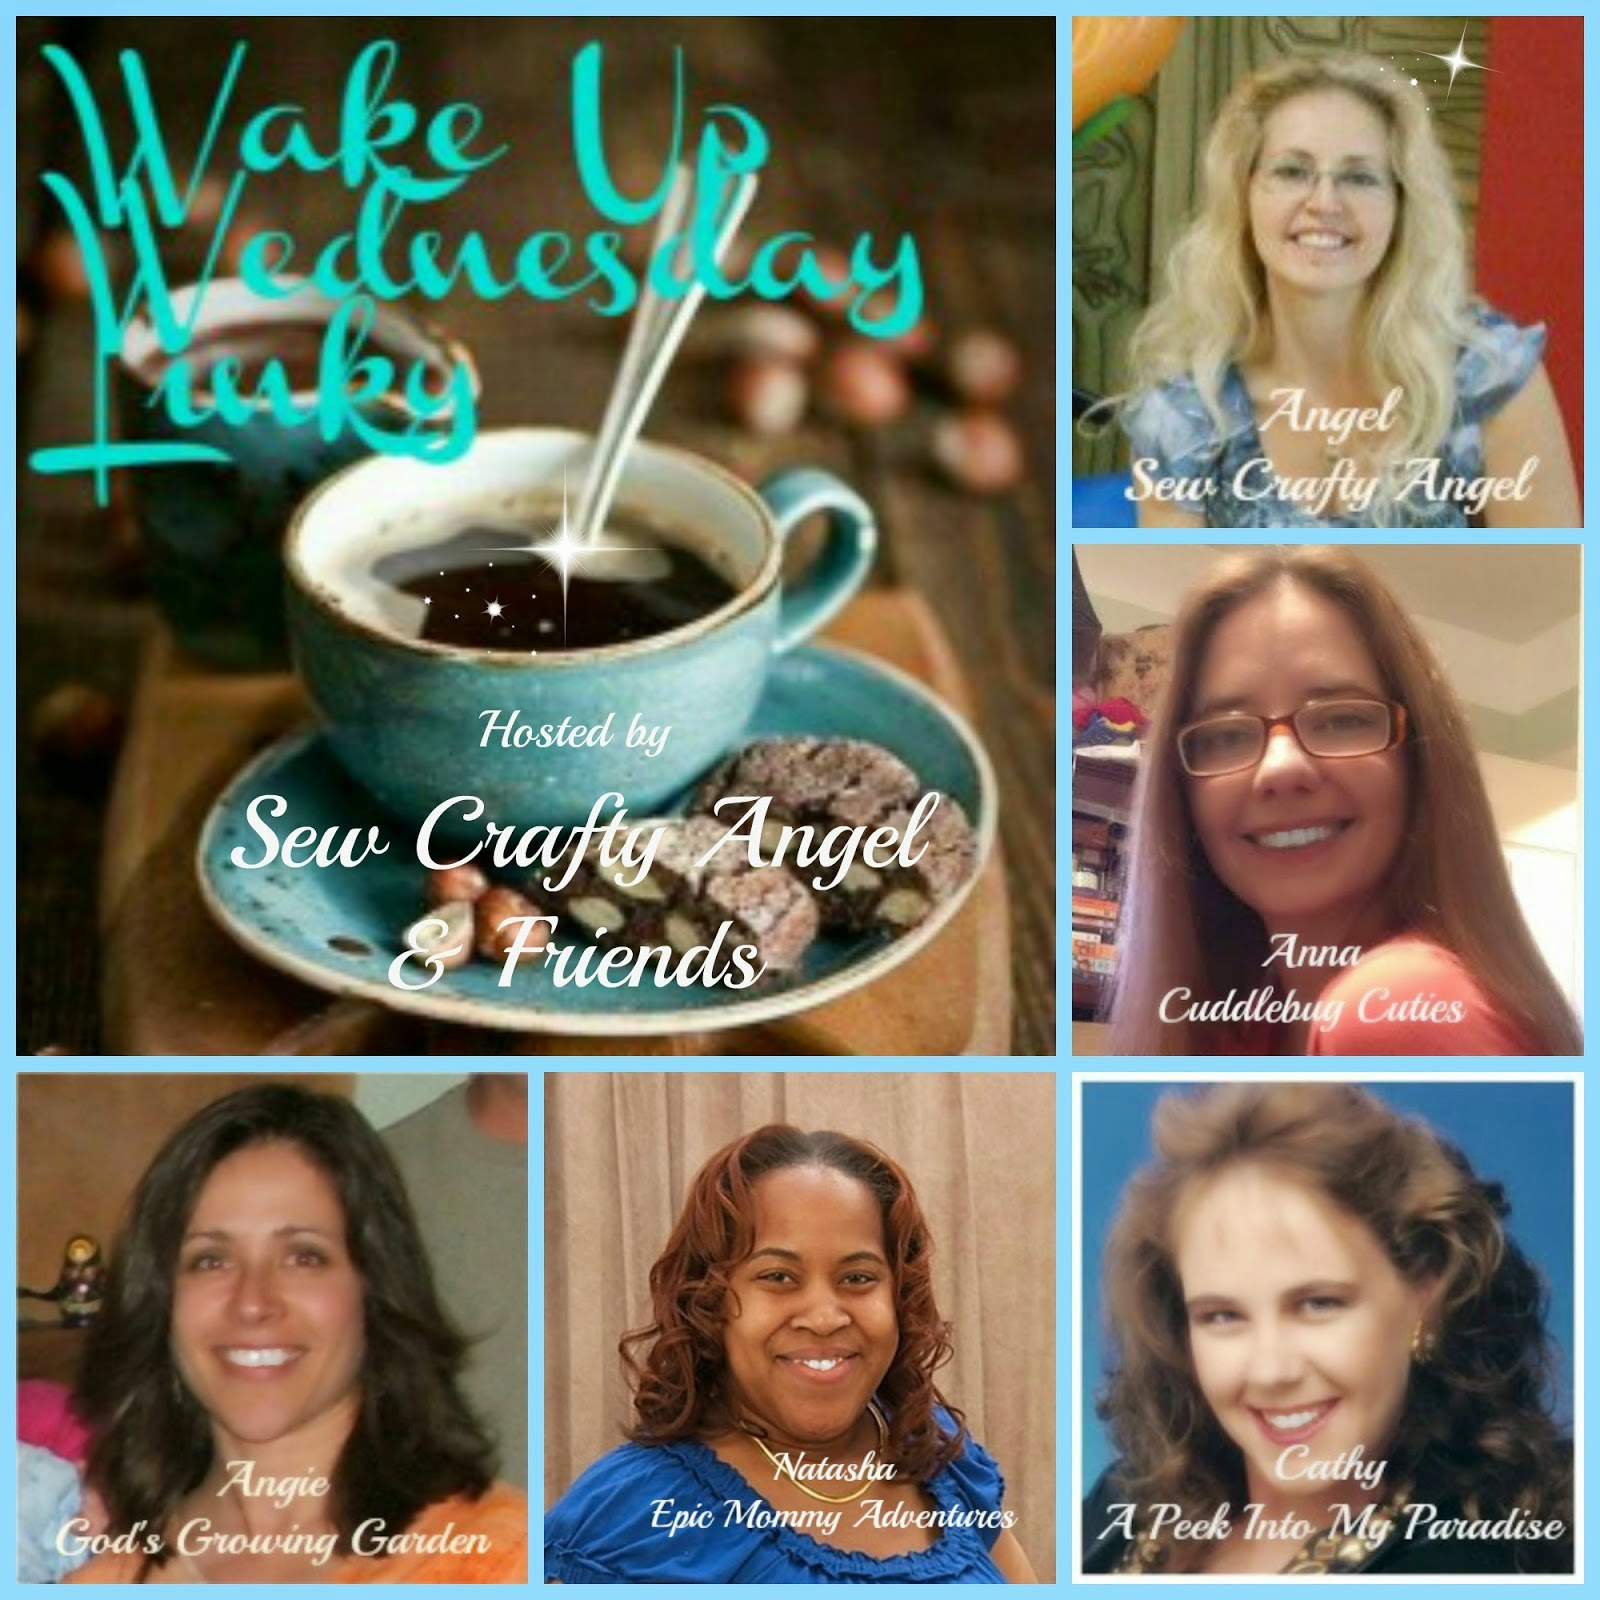 http://sewcraftyangel.blogspot.com/2015/04/wake-up-wednesday-linky-party-66.html